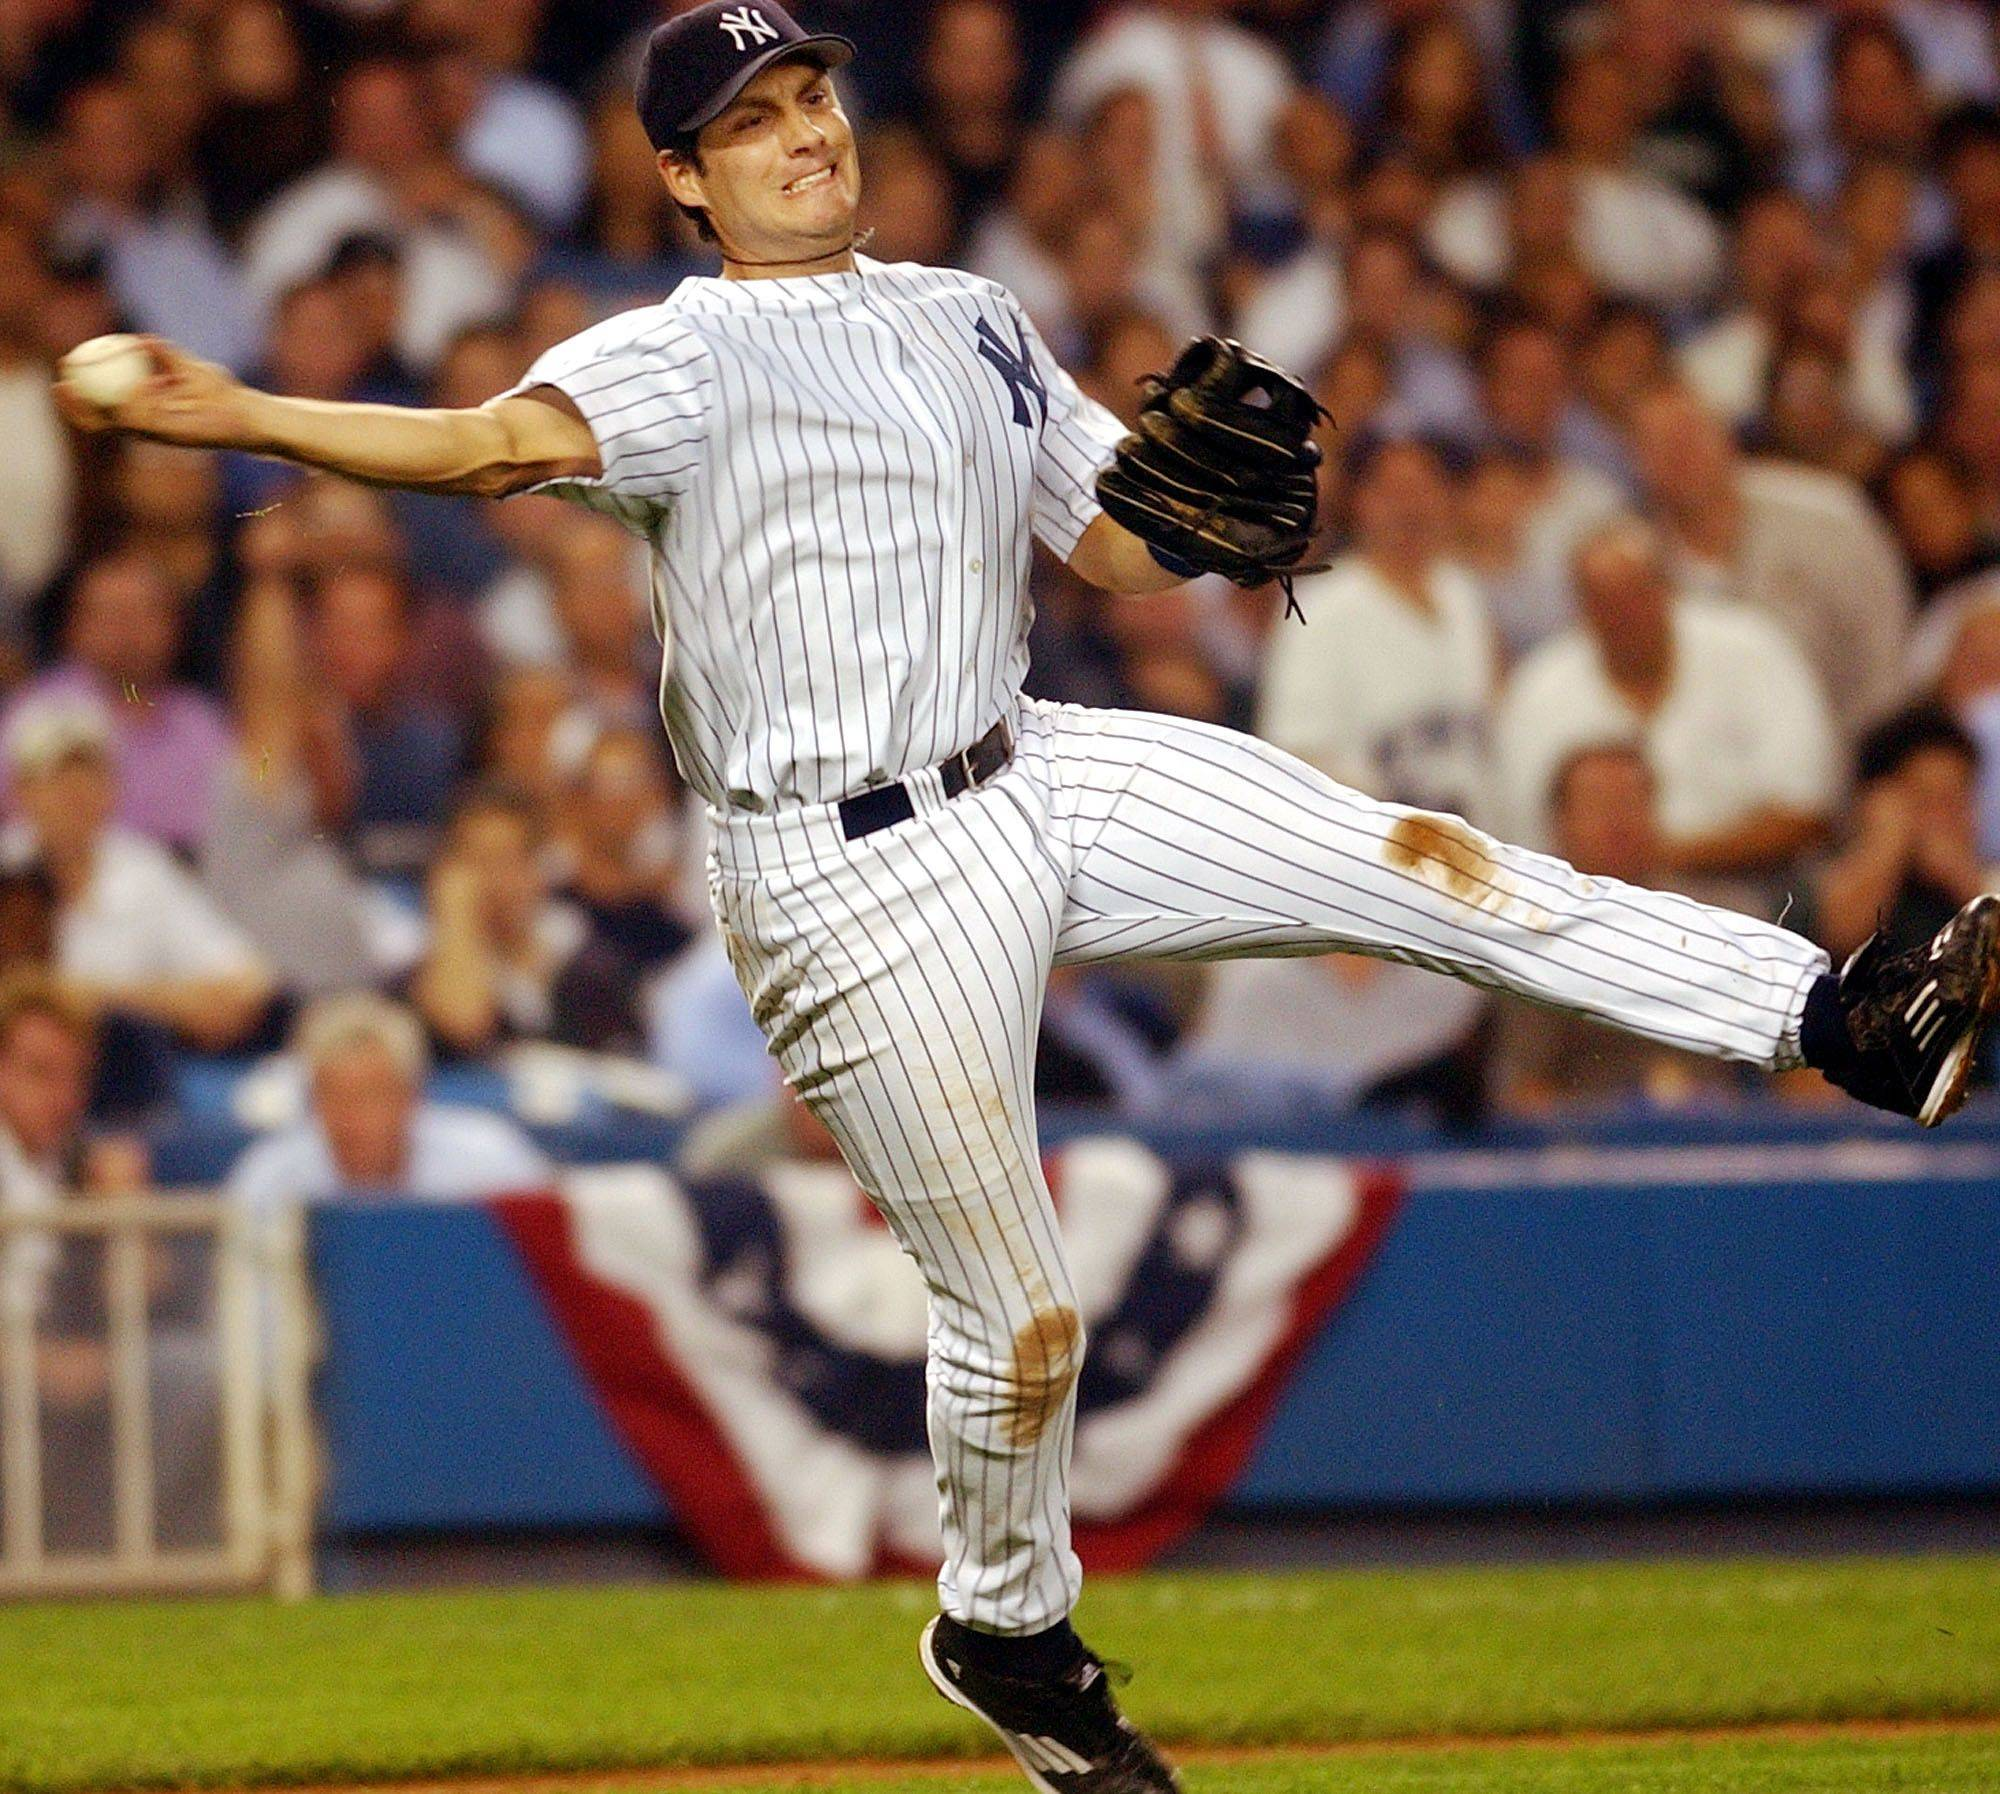 New York Yankees third baseman Robin Ventura makes an off-balance throw to put out Anaheim Angels batter David Eckstein during the third inning of Game 1 of American League Division Series, Tuesday, Oct. 1, 2002, at Yankees Stadium in New York.